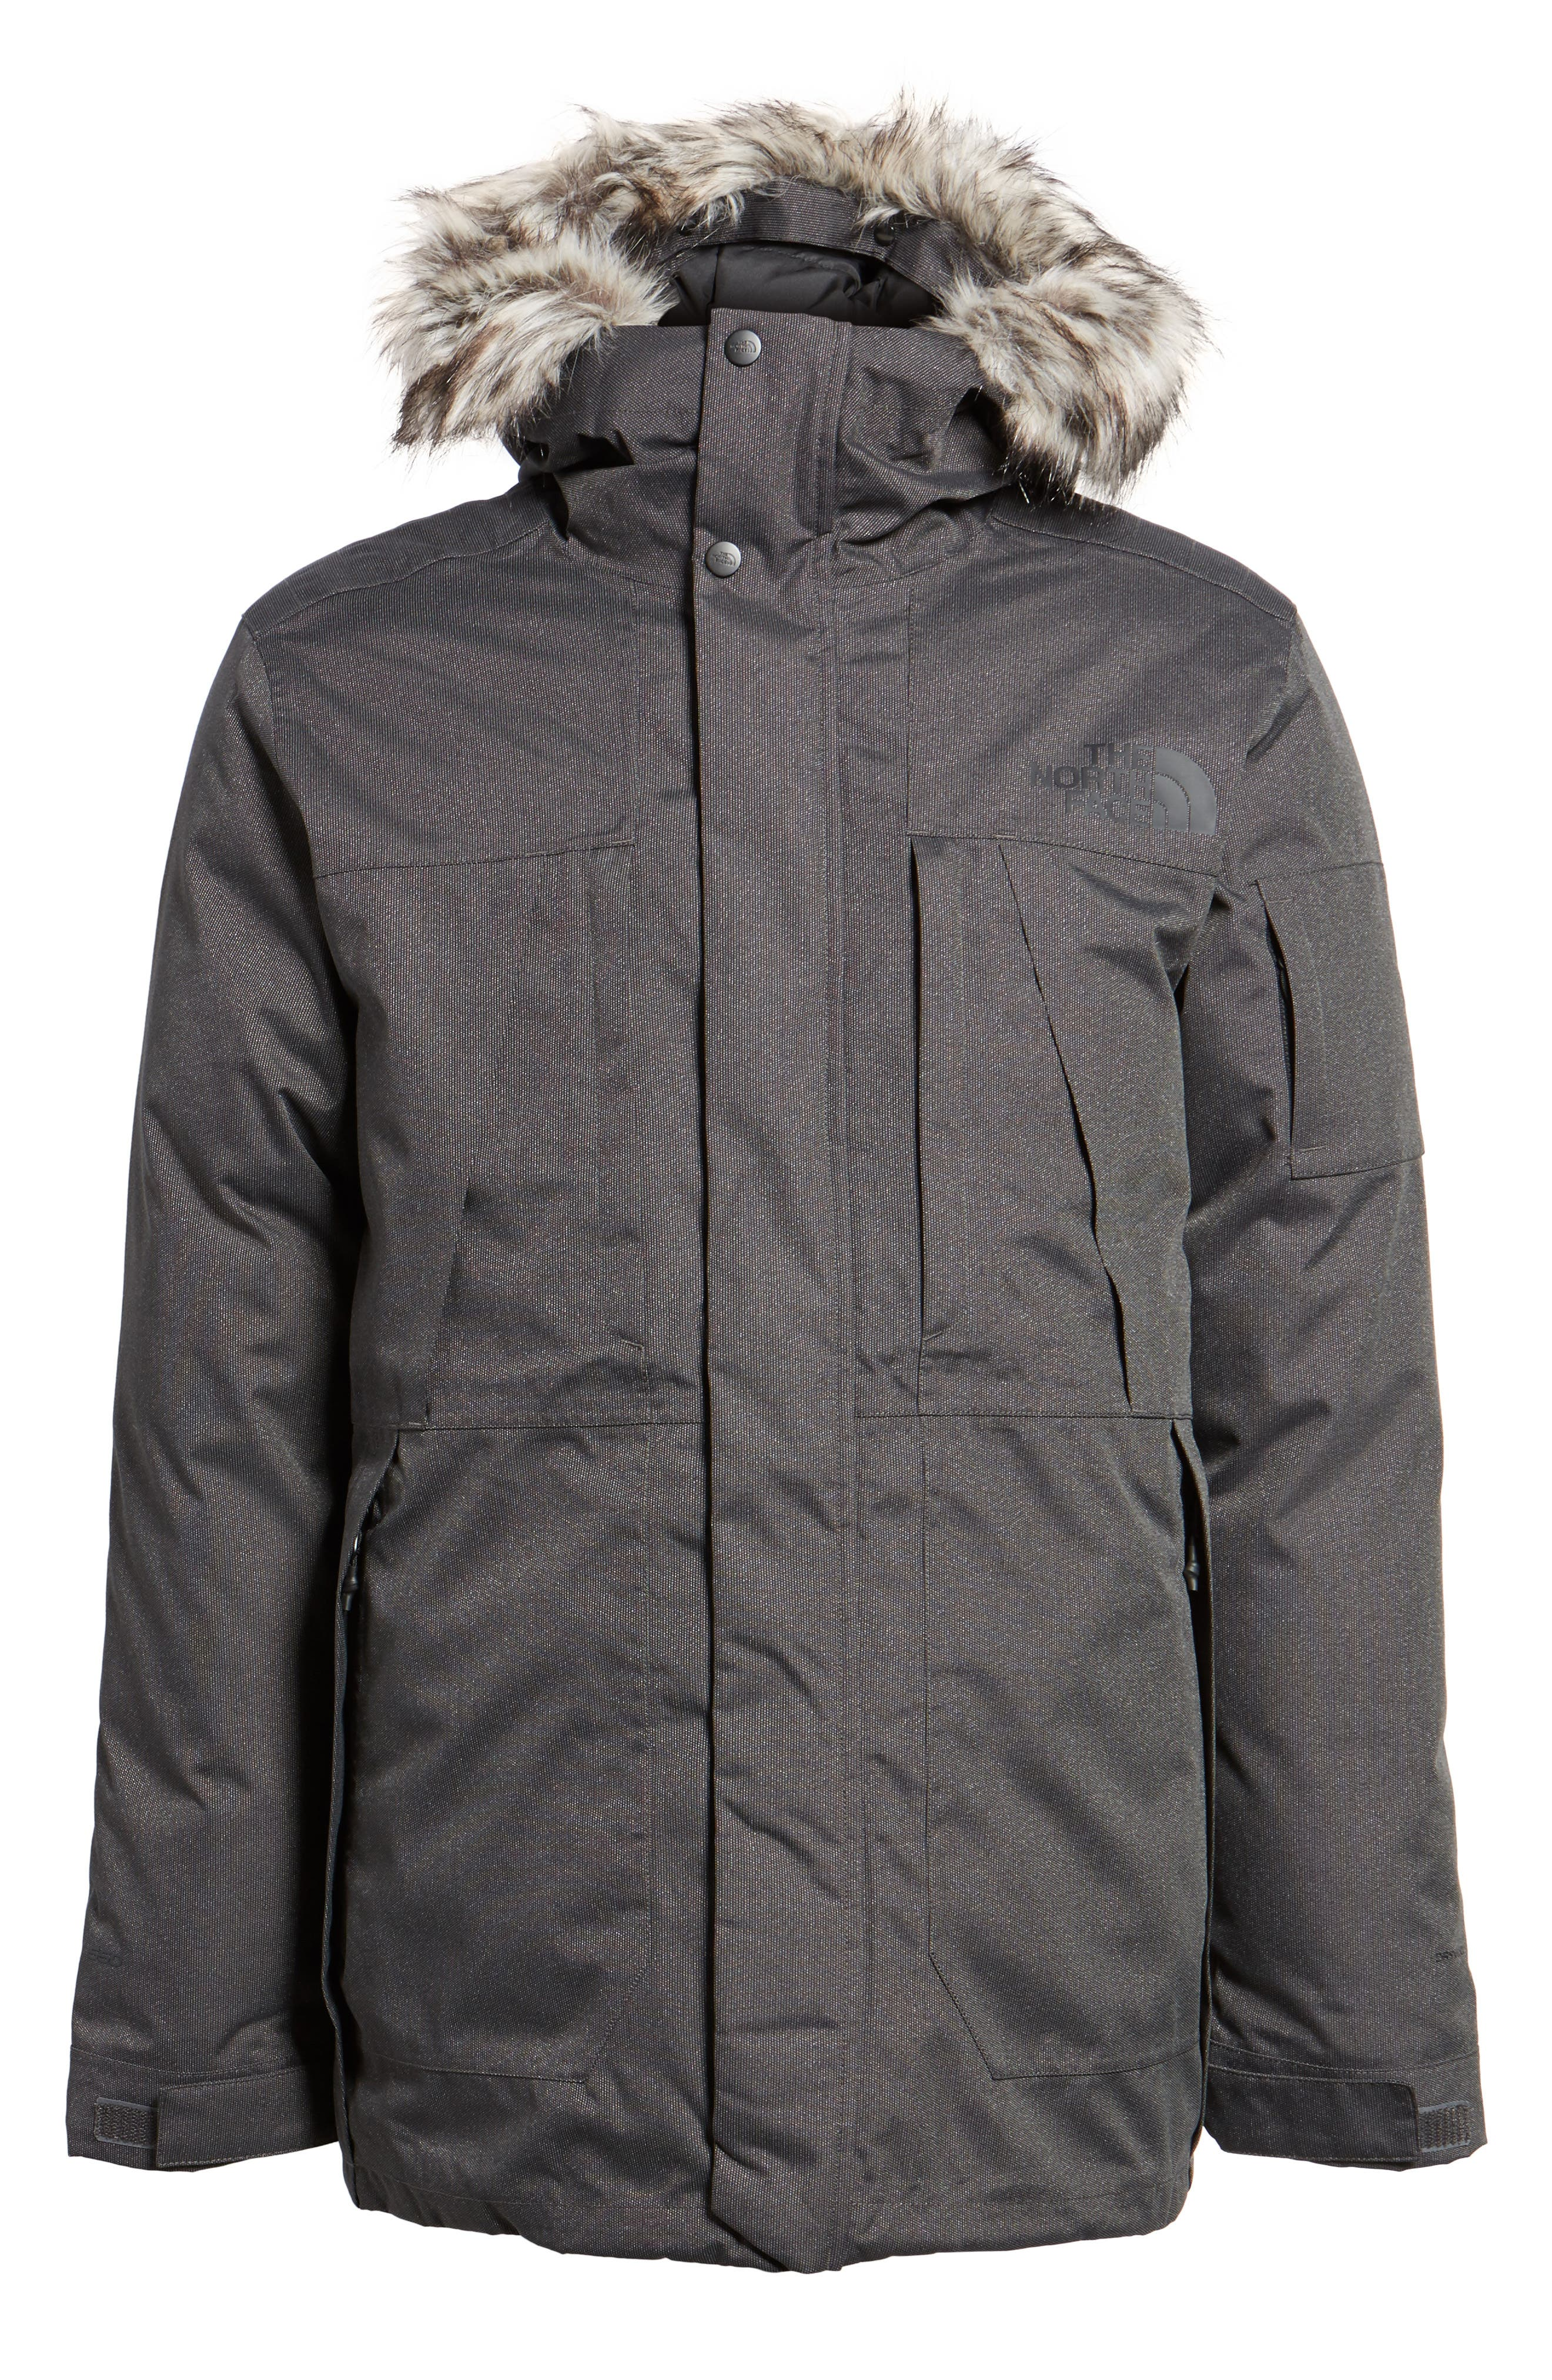 Outer Boroughs Waterproof Parka,                         Main,                         color, Tnf Dark Grey Heather